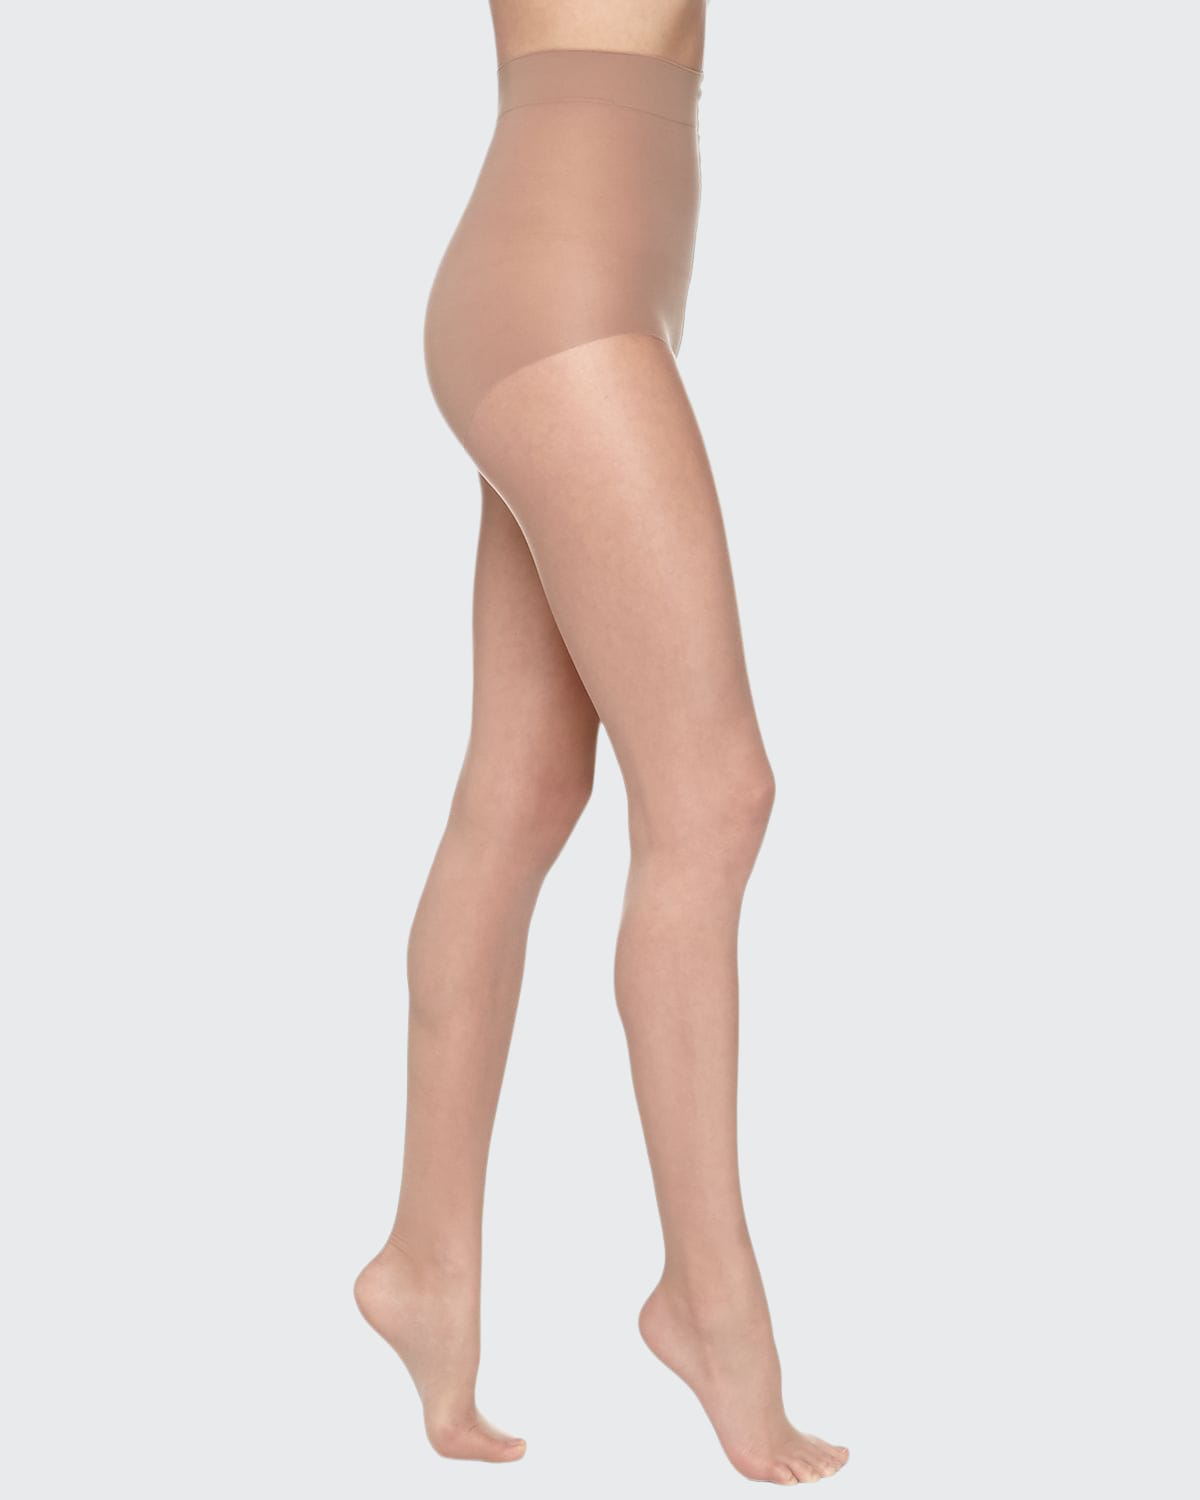 Nudes Collection Sheer Control-Top Tights